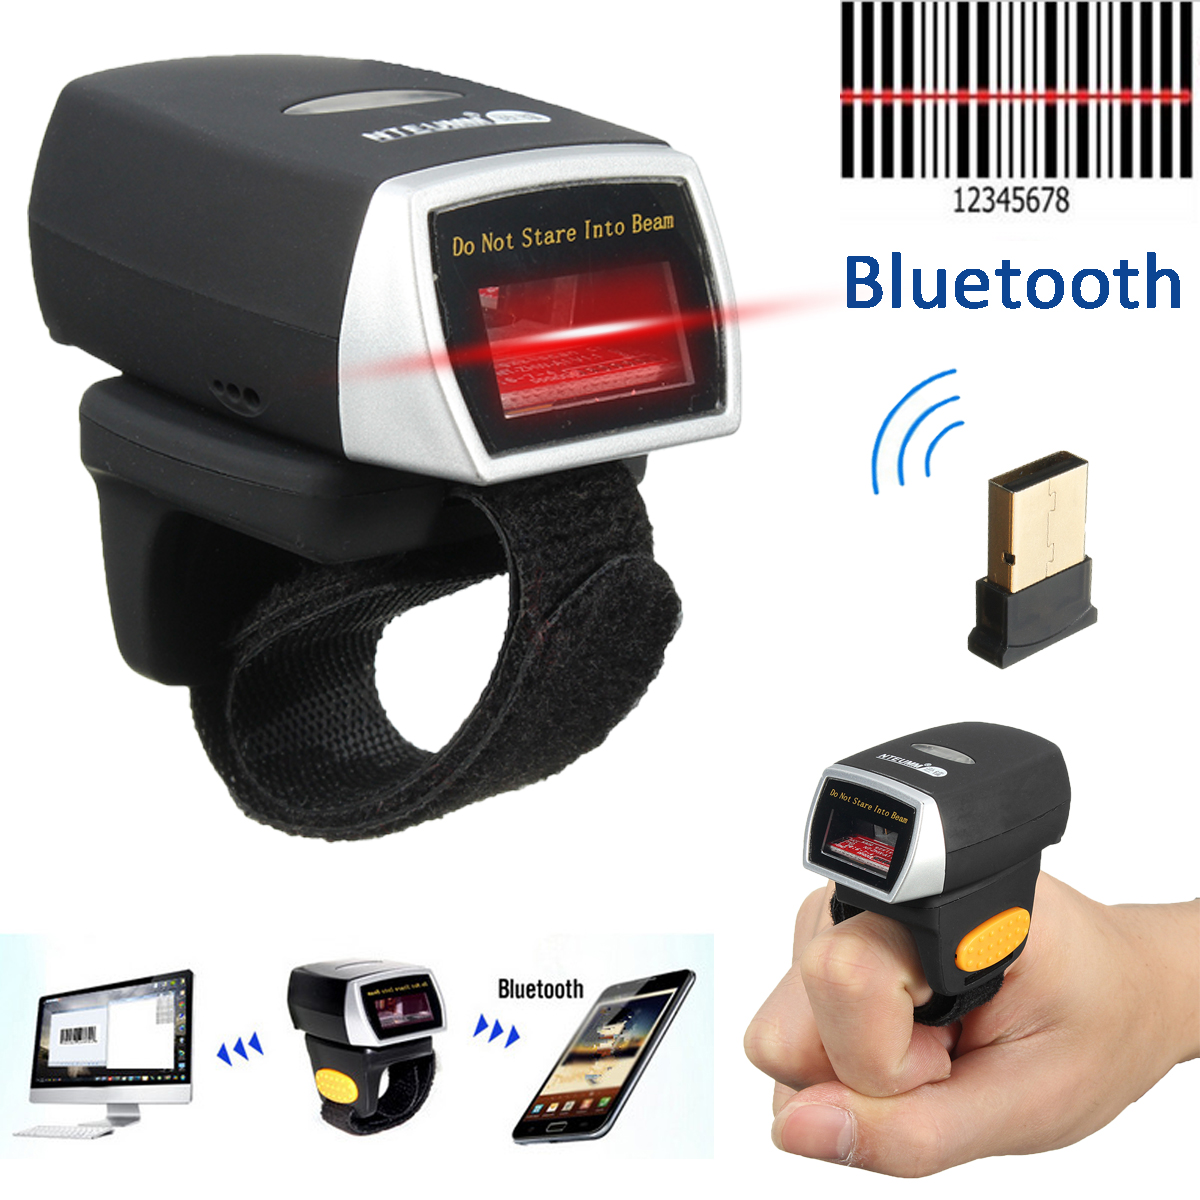 Mini Bluetooth Scanner Barcode Reader Laser Weirless Scanner Wearable Ring Bar Code Scanner 1D Reader Scan for Phone PC Tablet trendy v neck long sleeve floral print see through blouse for women